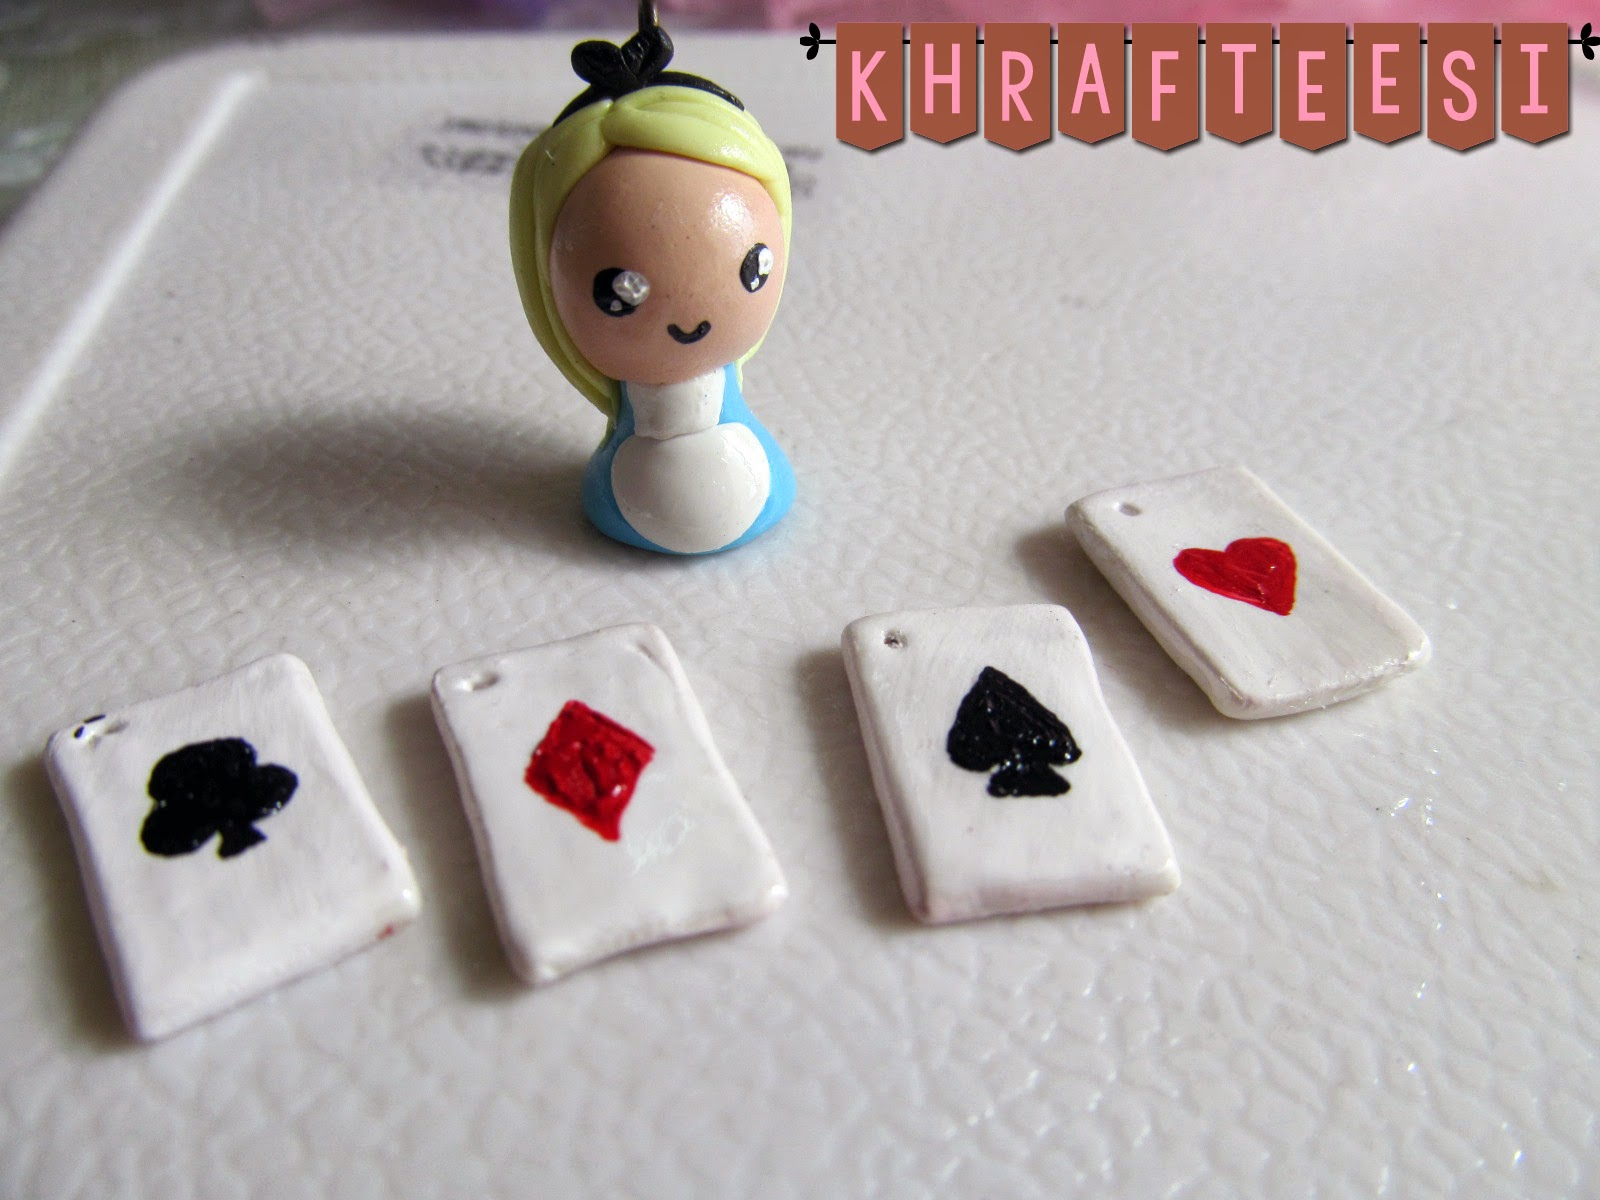 Alice and wonderland Chibi Charm with poker cards